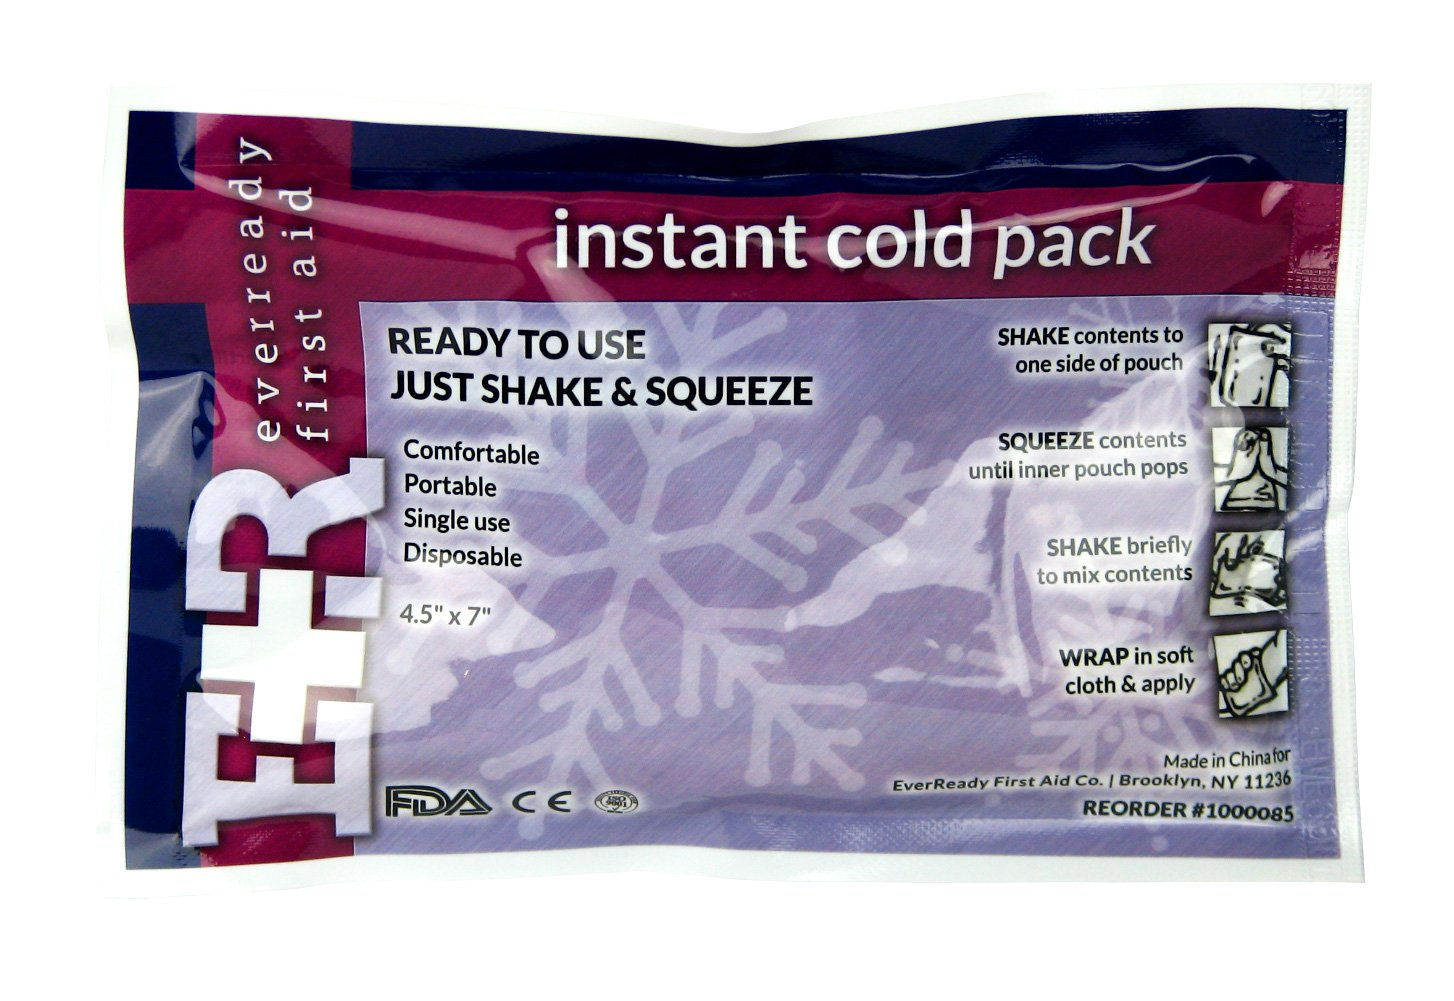 Ever Ready First Instant Cold Pack, 4.5x7, 125-count by Ever Ready First Aid